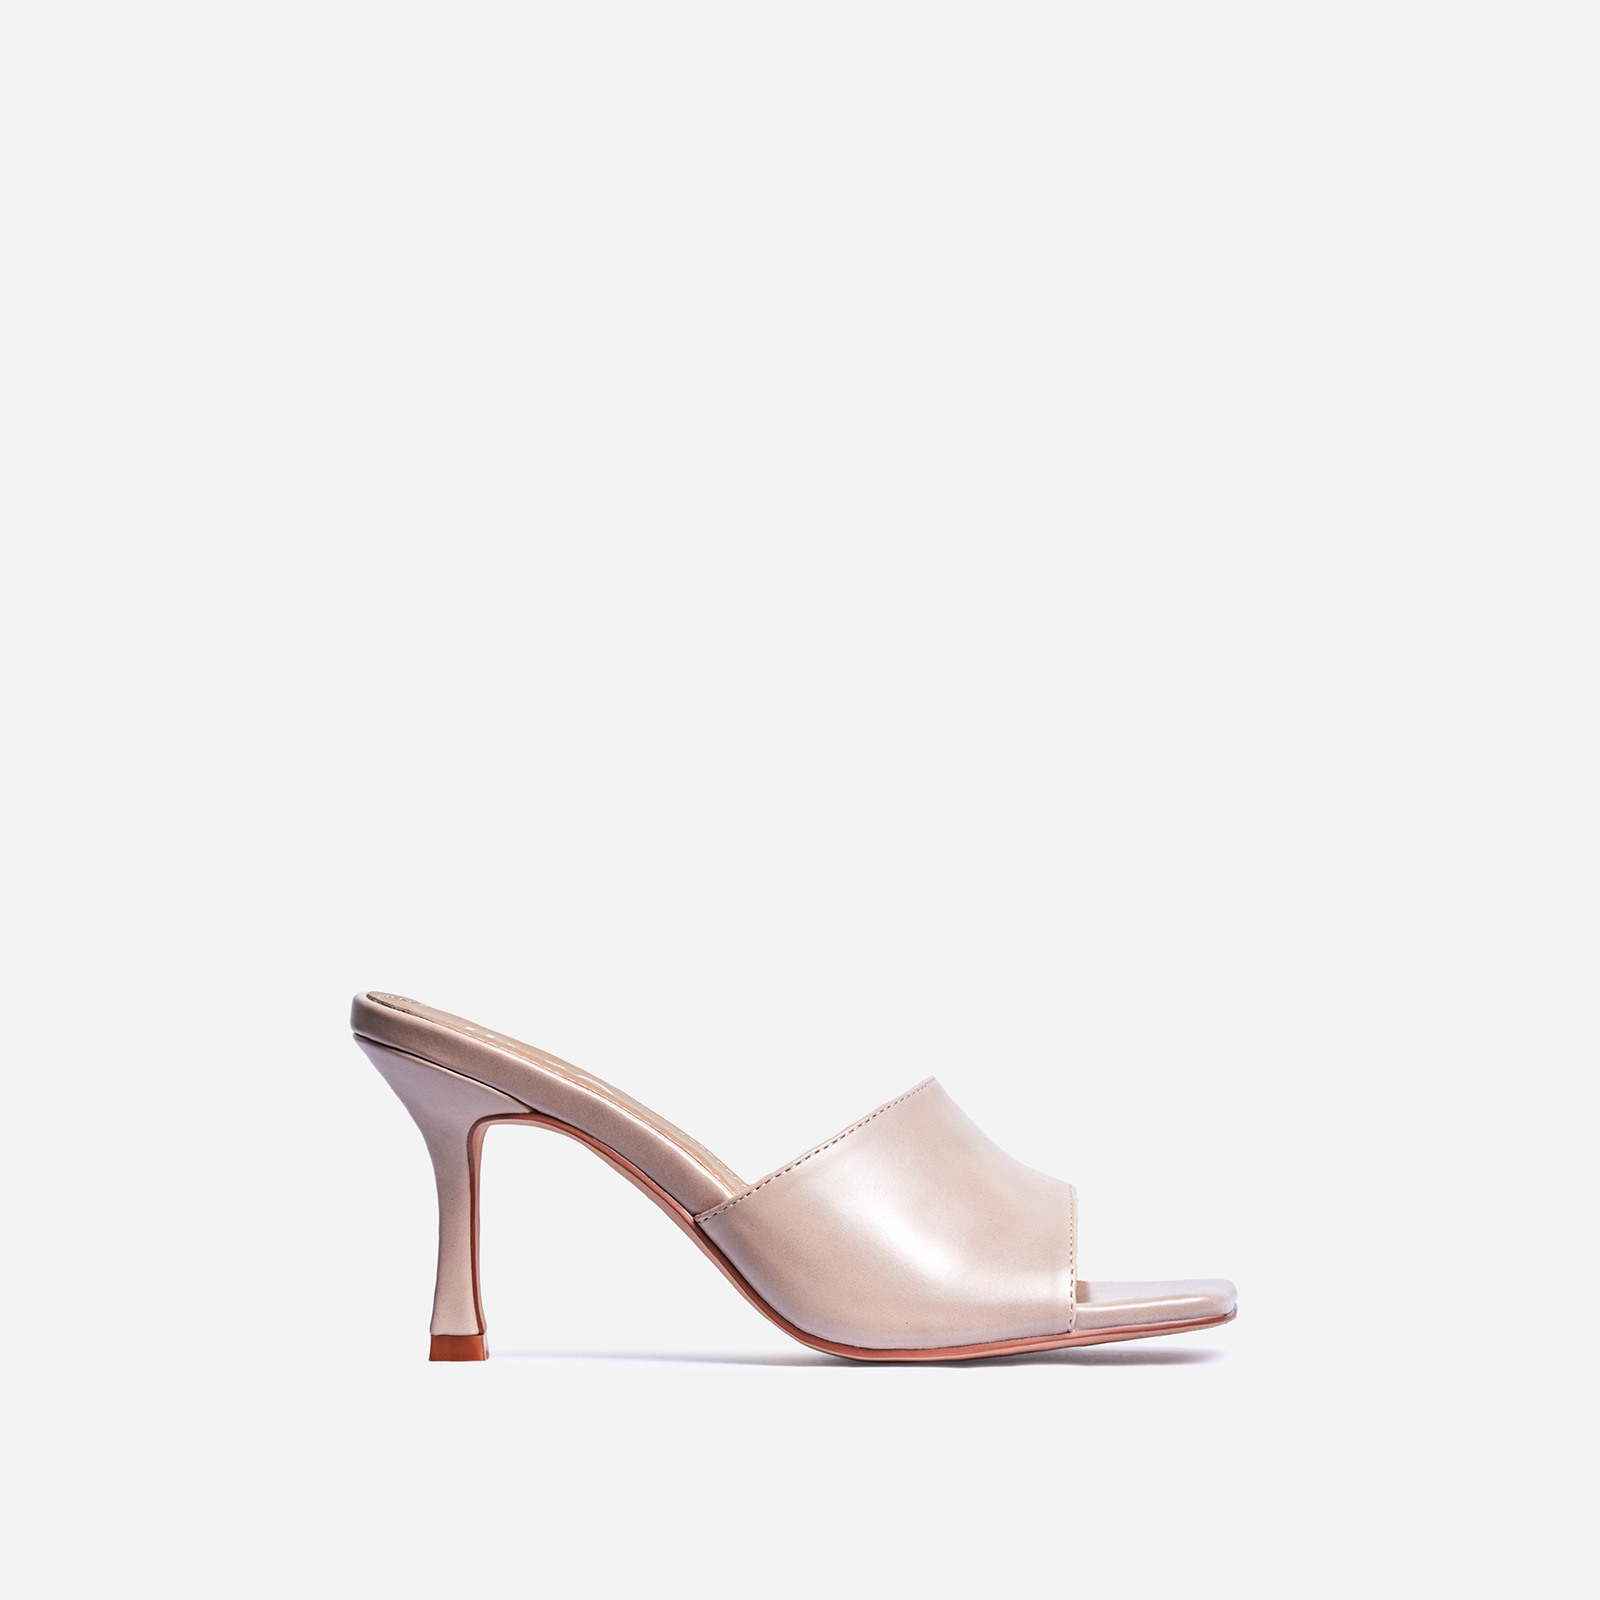 Hilton Square Peep Toe Kitten Heel Mule In Nude Faux Leather